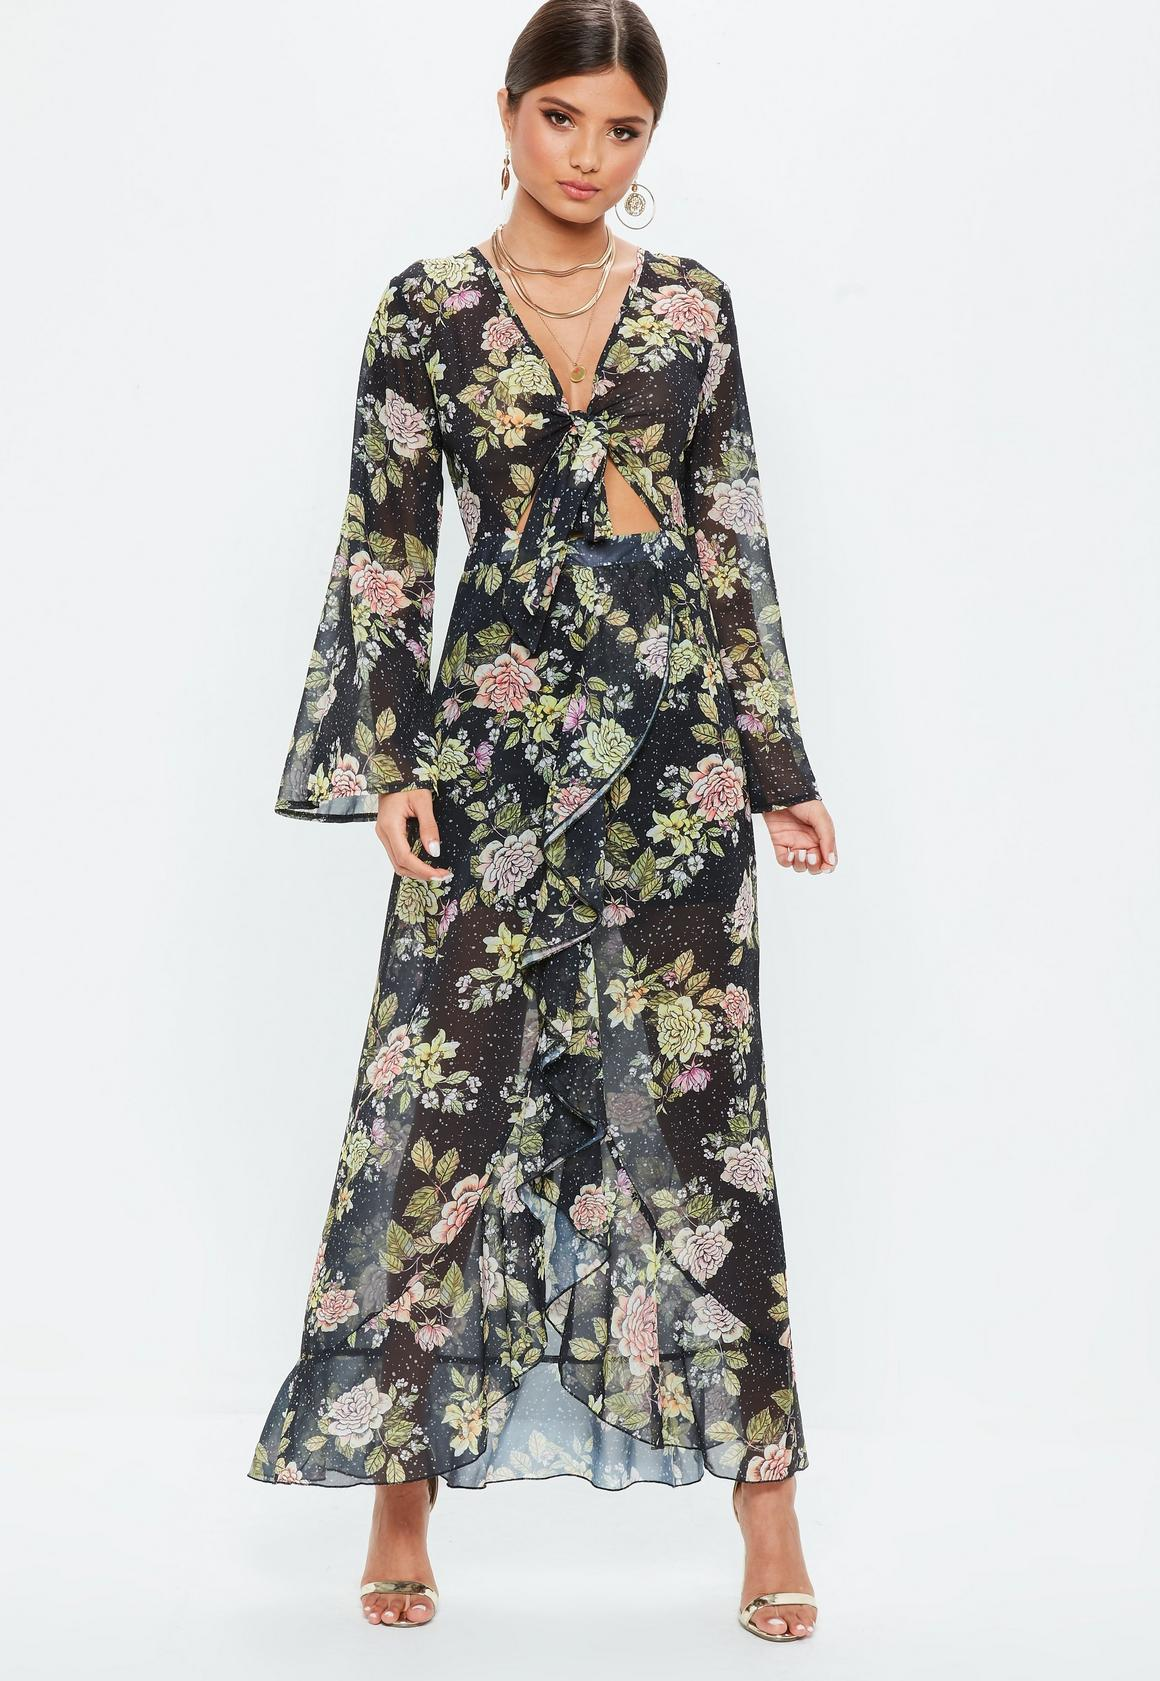 dec76d1b2449 Also, I know this isn't supposed to be a wishlist post or anything, but  while we're here . . . look at this gorgeous dress I found when looking for  ...